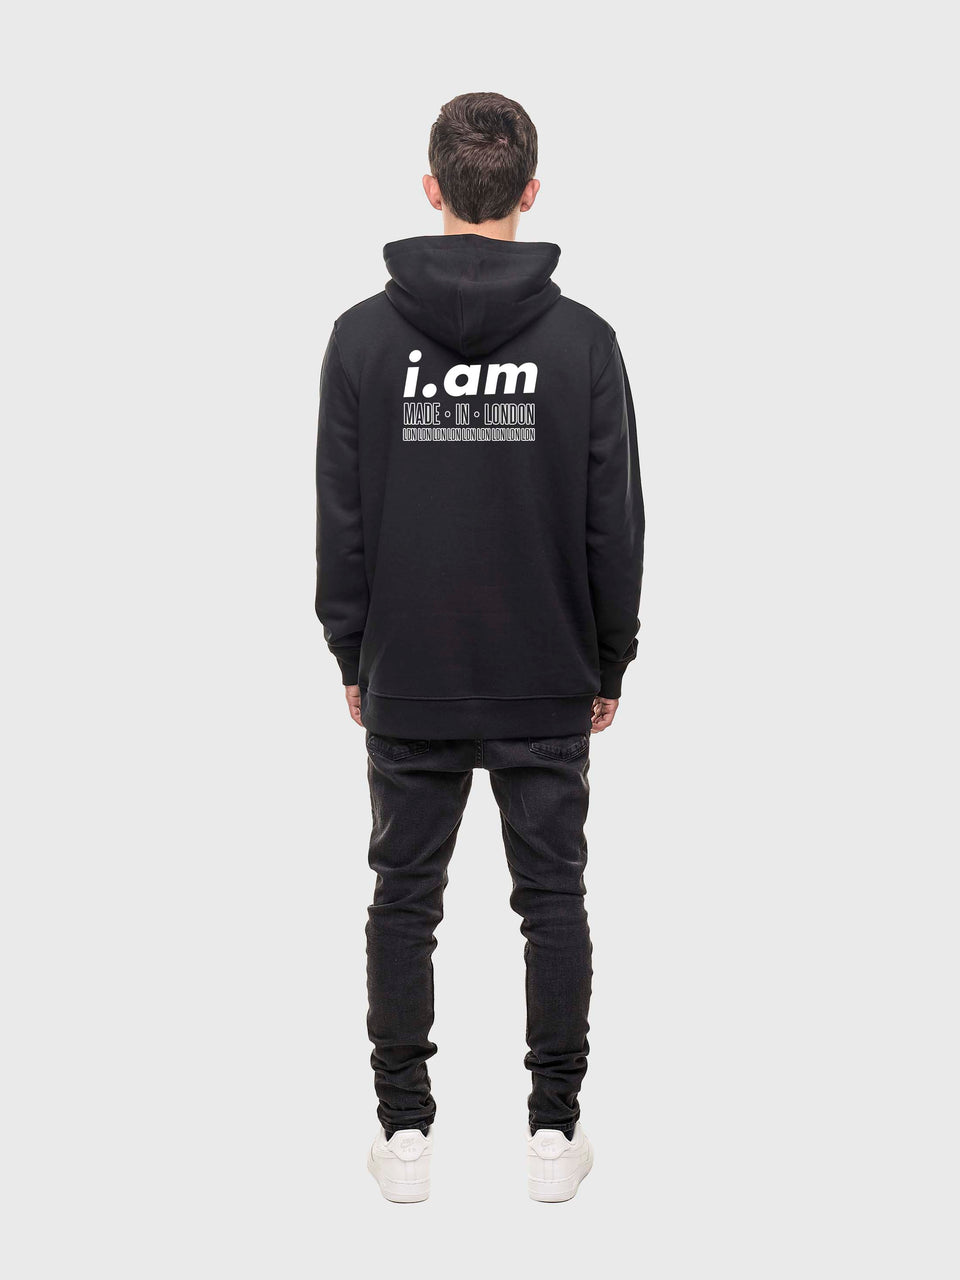 Made in London - Black - Unisex pull over hoodie